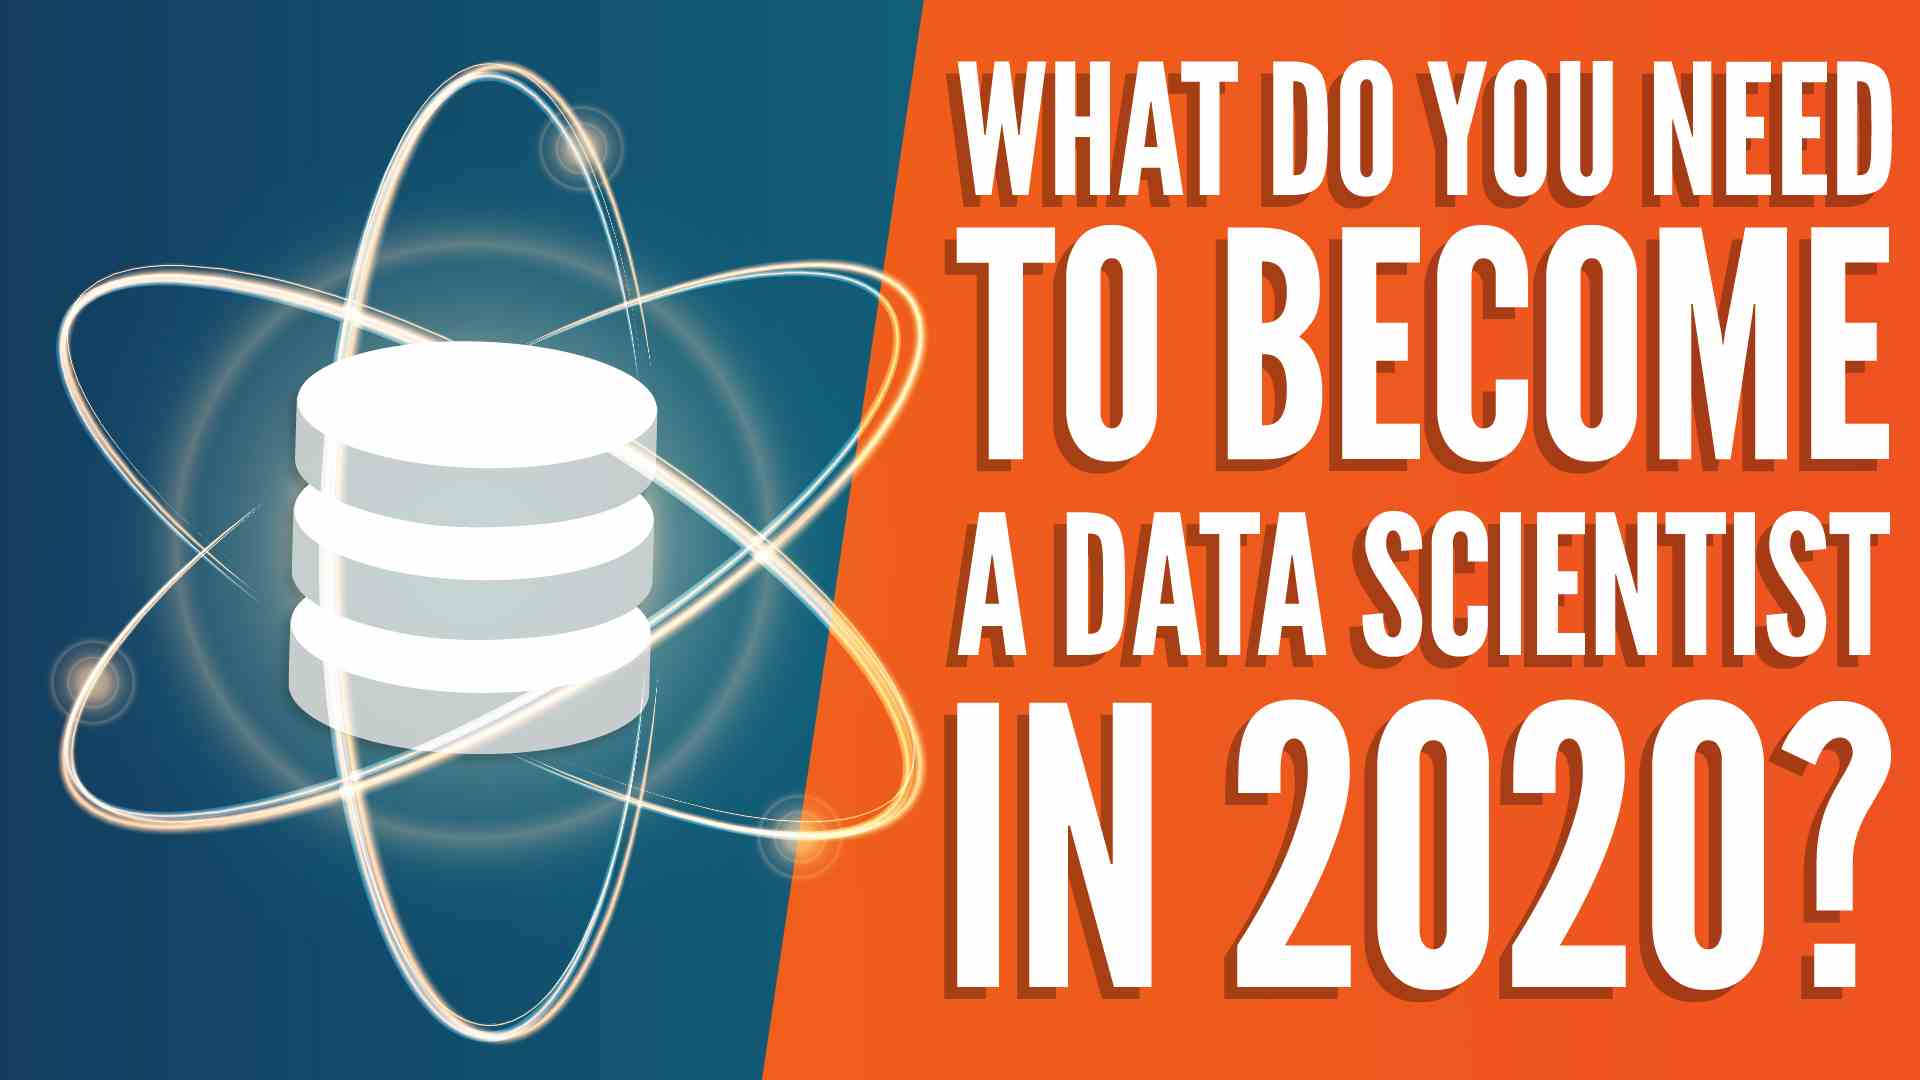 How to Become a Data Scientist in 2020 - Top Skills, Education, and Experience